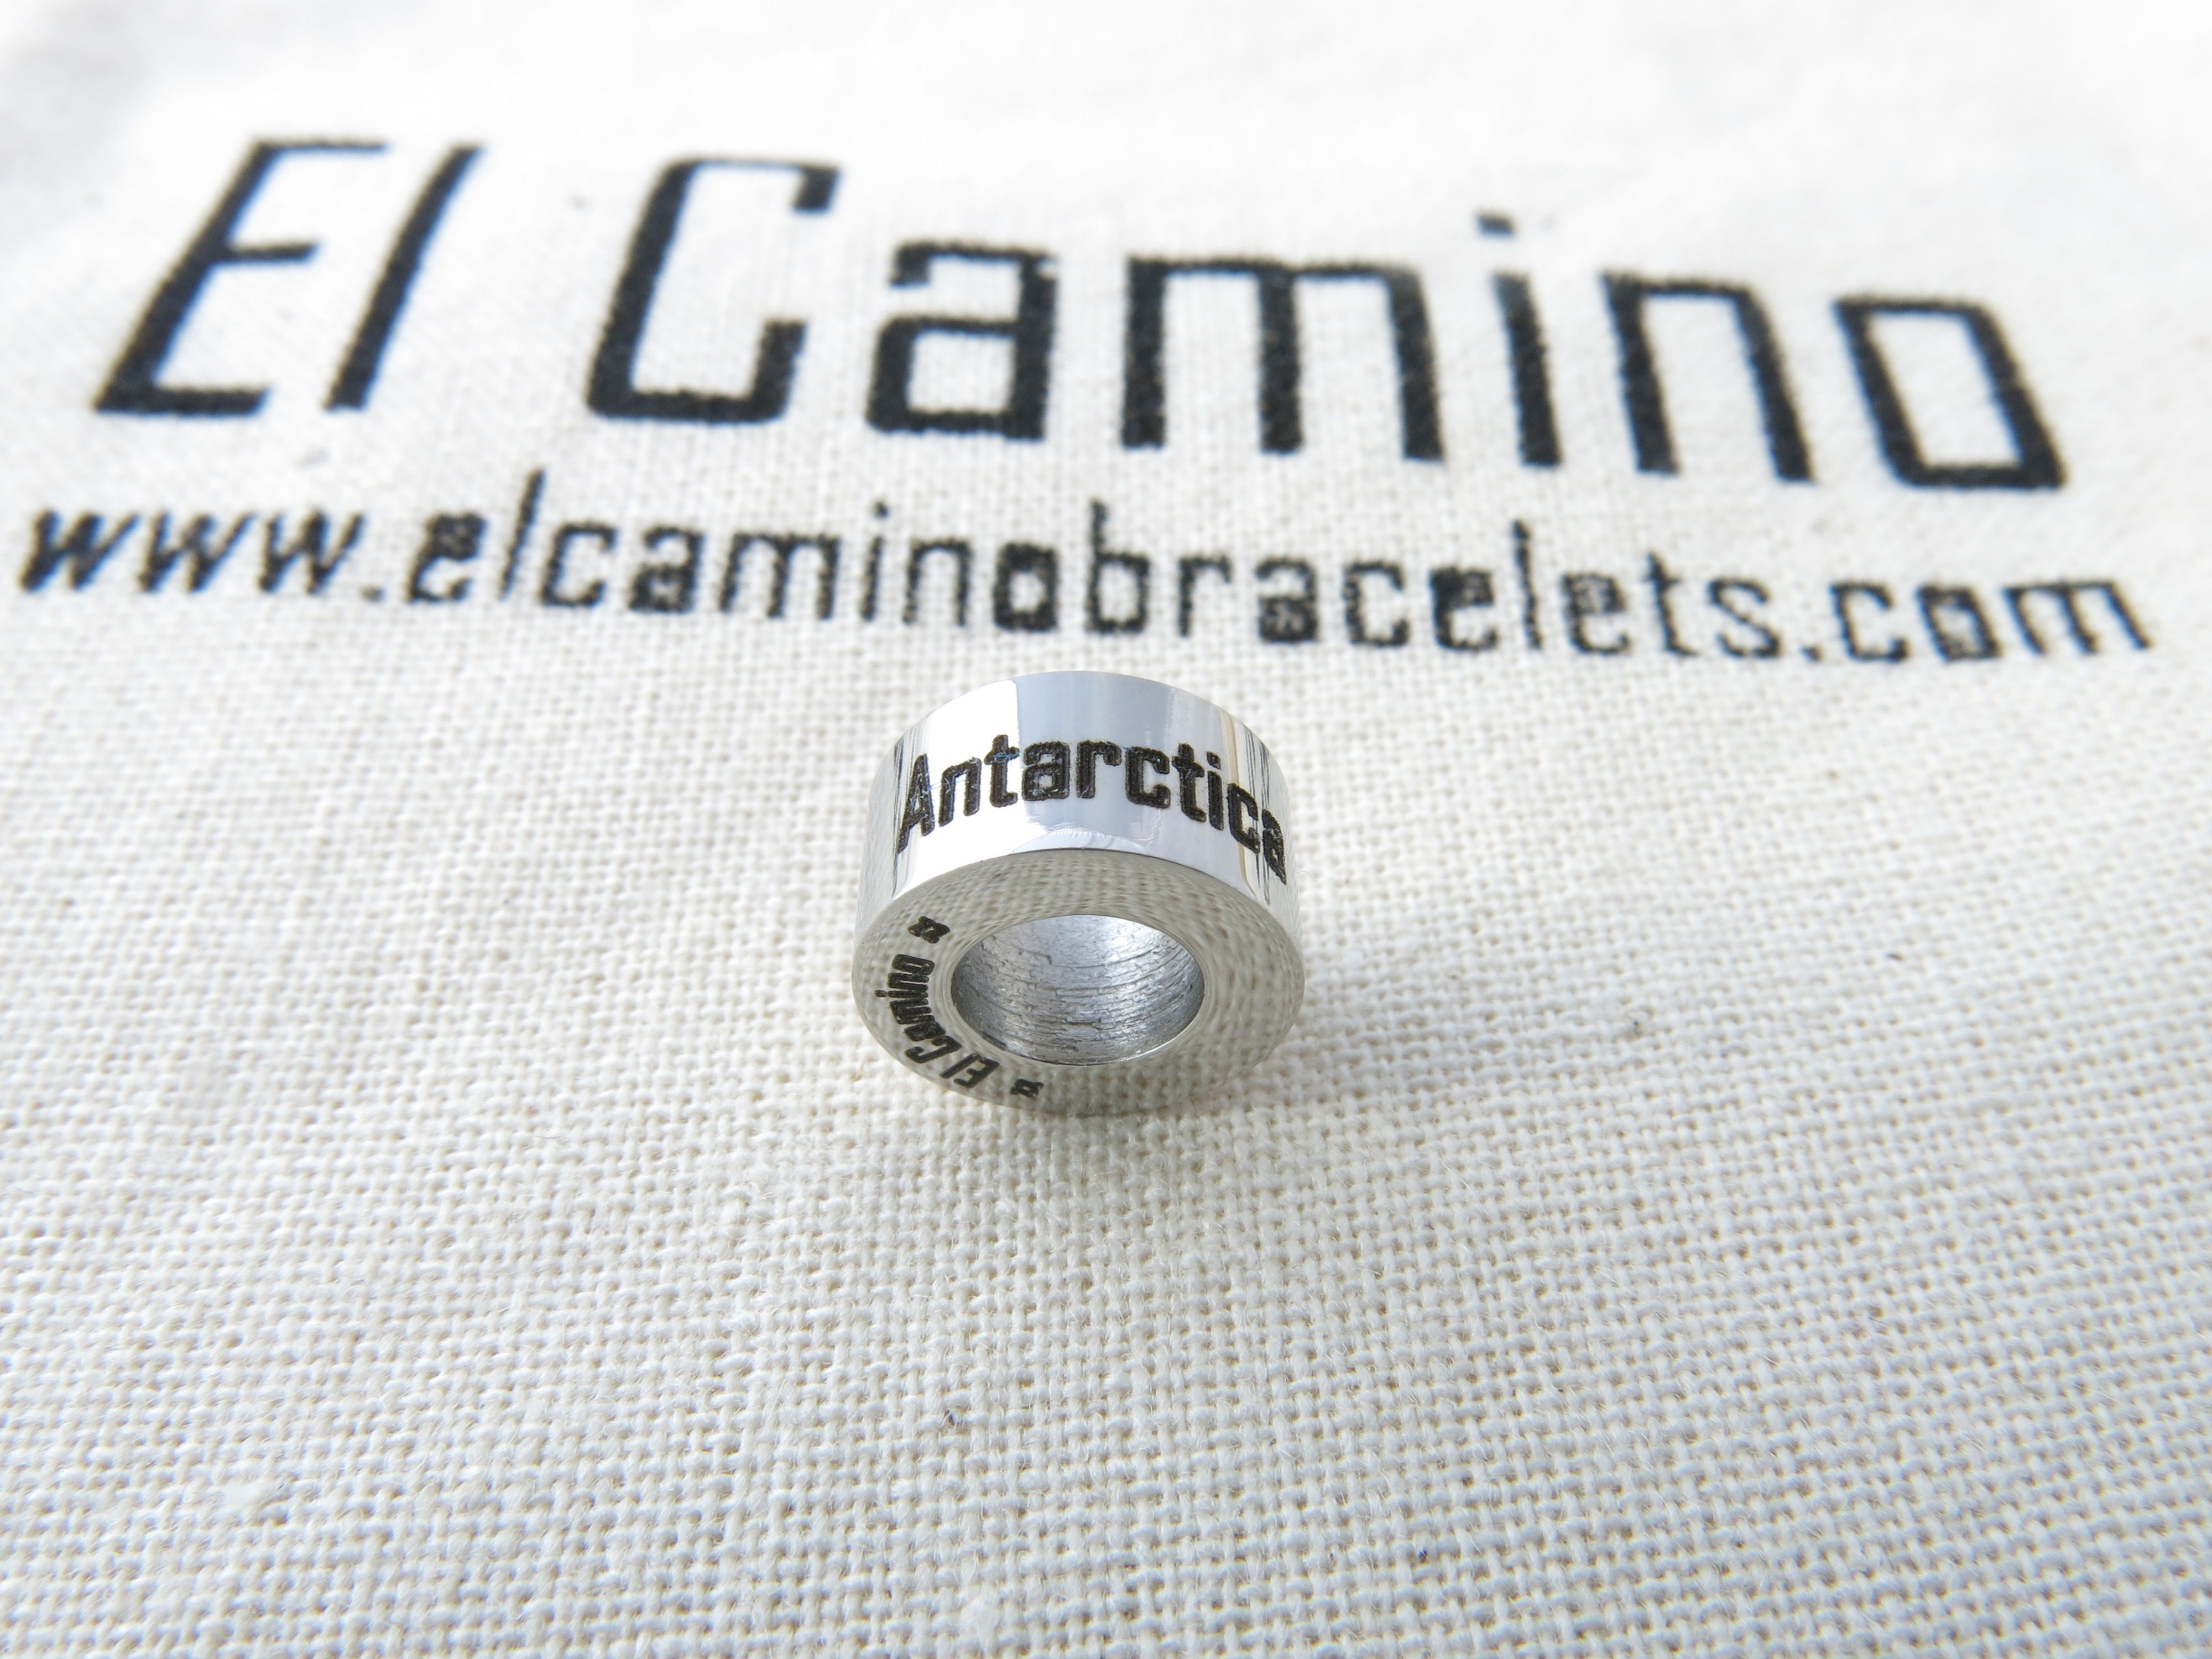 Ever travelled to Antarctica? If you have, pin this photo or head over to www.elcaminobracelets.com to purchase this Country Step for your El Camino!  #Antarctica #elcaminob #travelling #travel #travelmemories #jewellery #fashion #gapyear #gift #charm #backpacking #bracelet #handmade #xmas #christmas #present